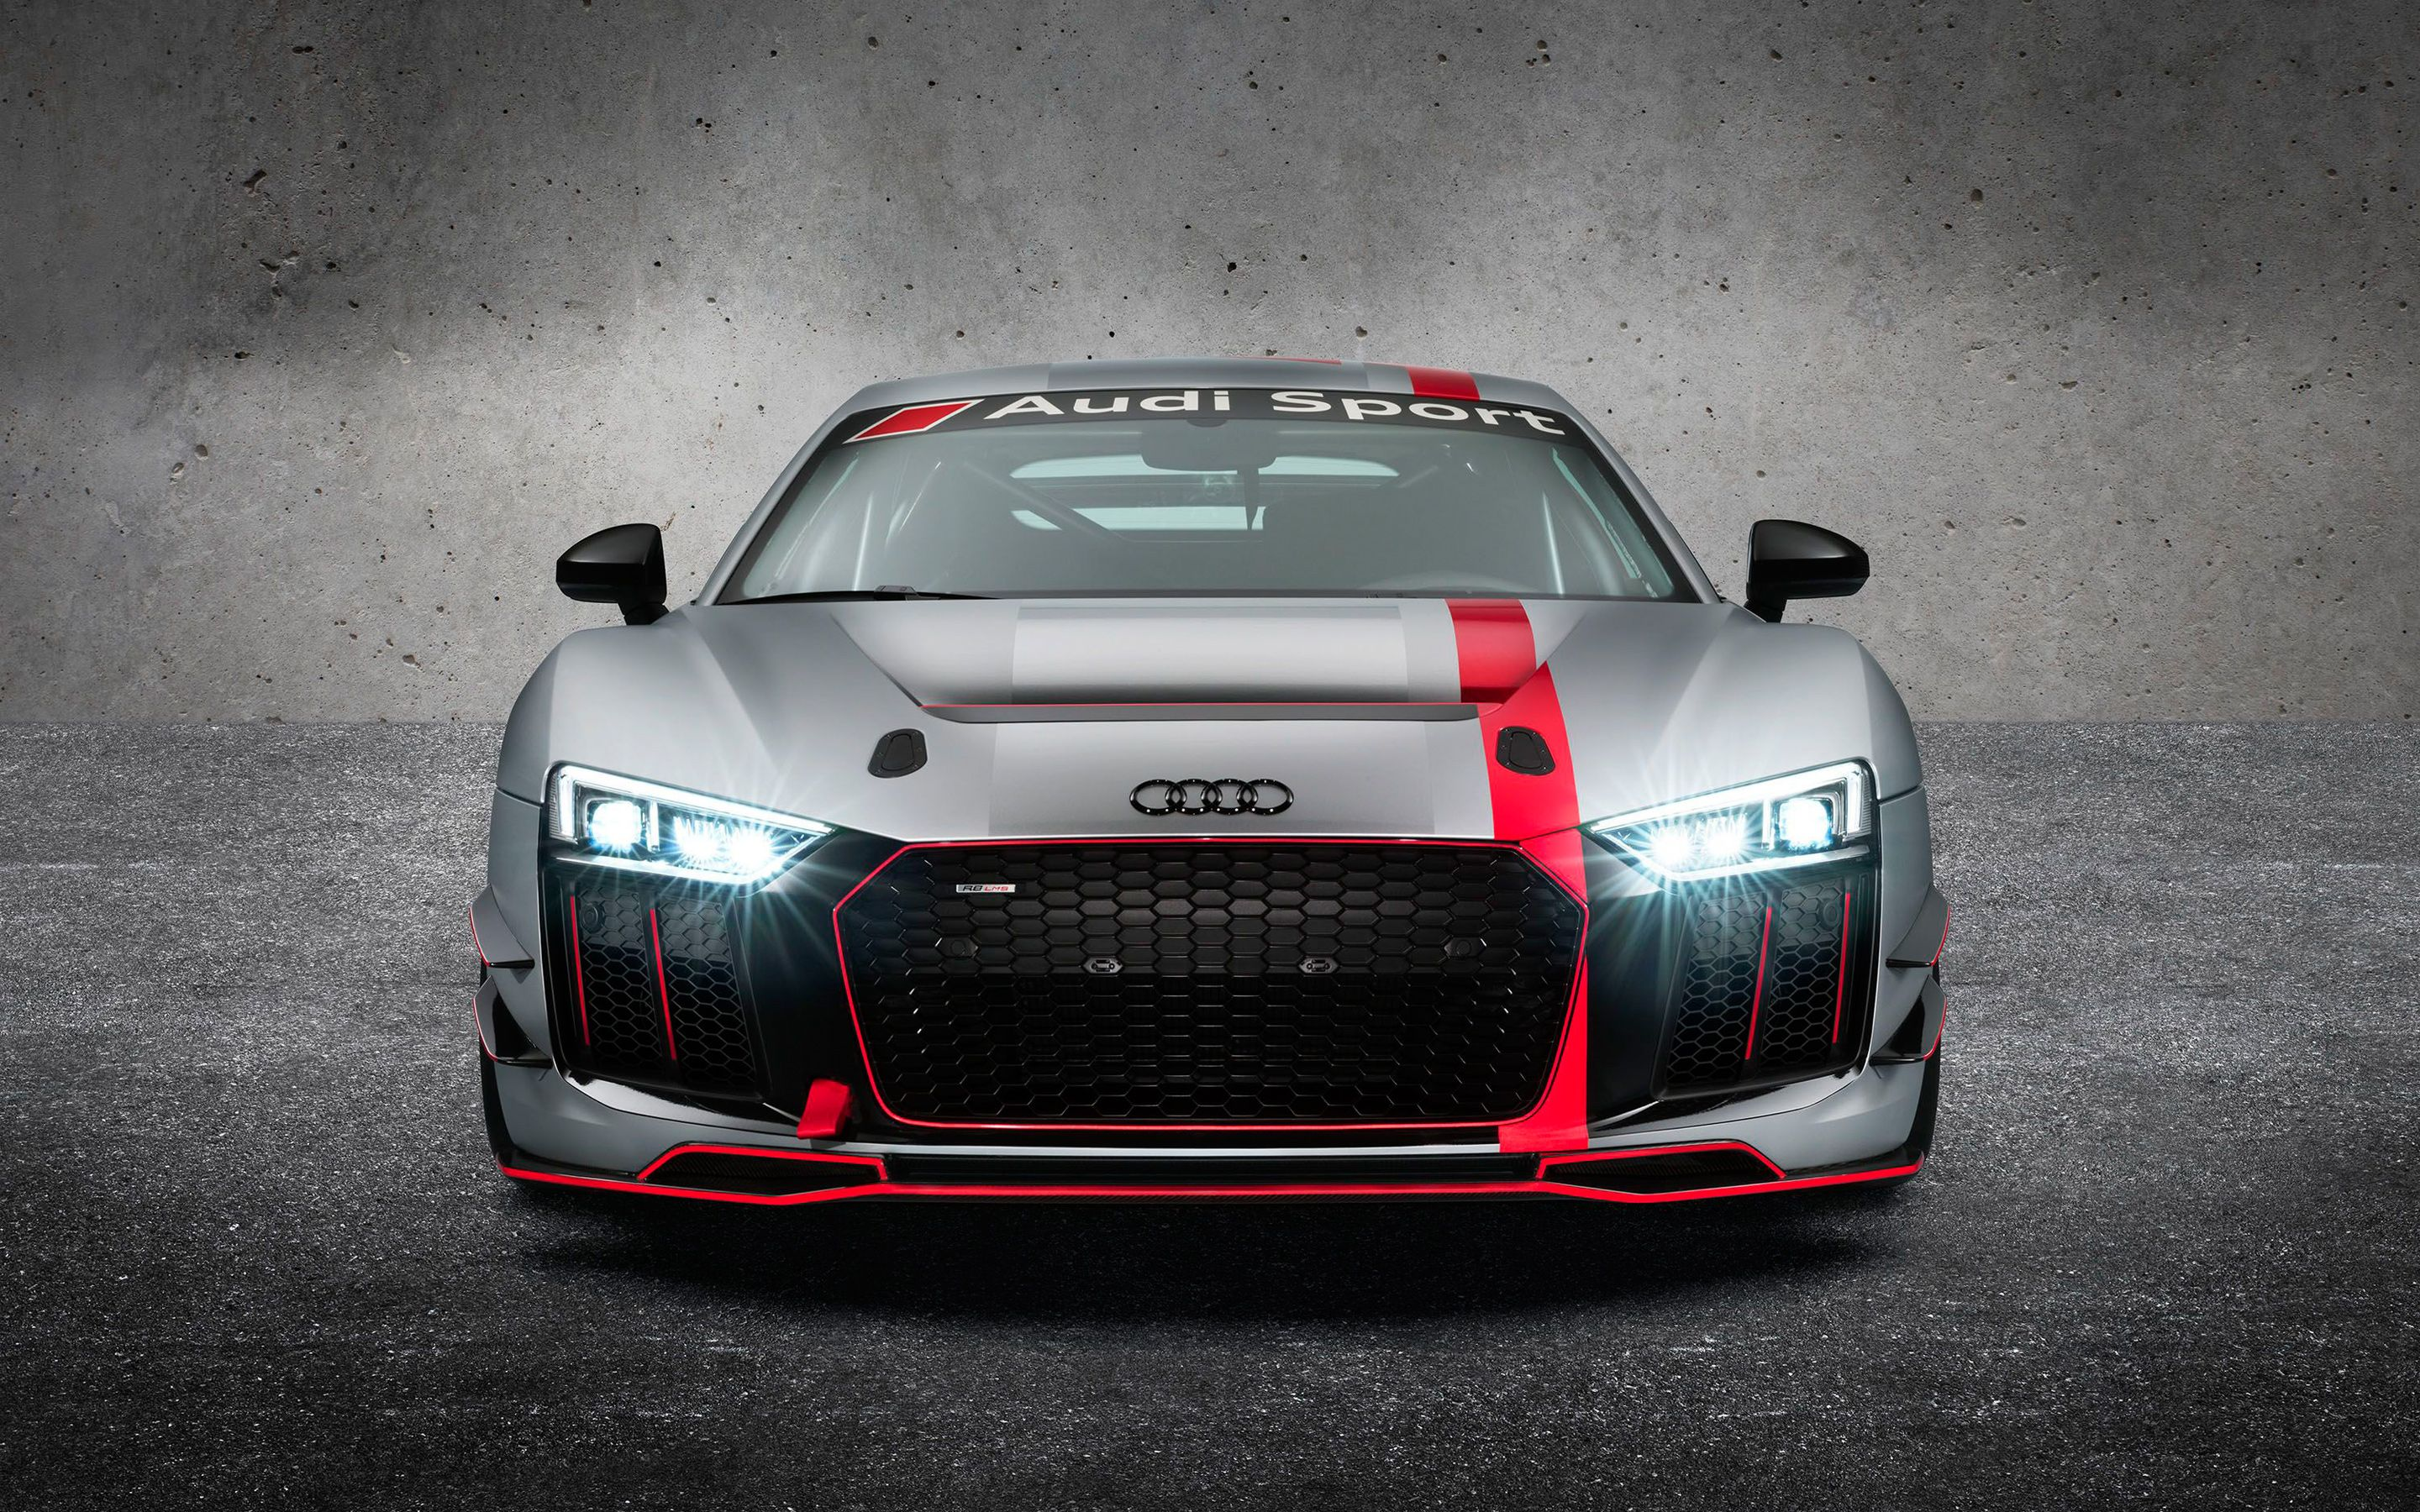 Audi Hd Wallpapers This Wallpaper Carros Acento Auto